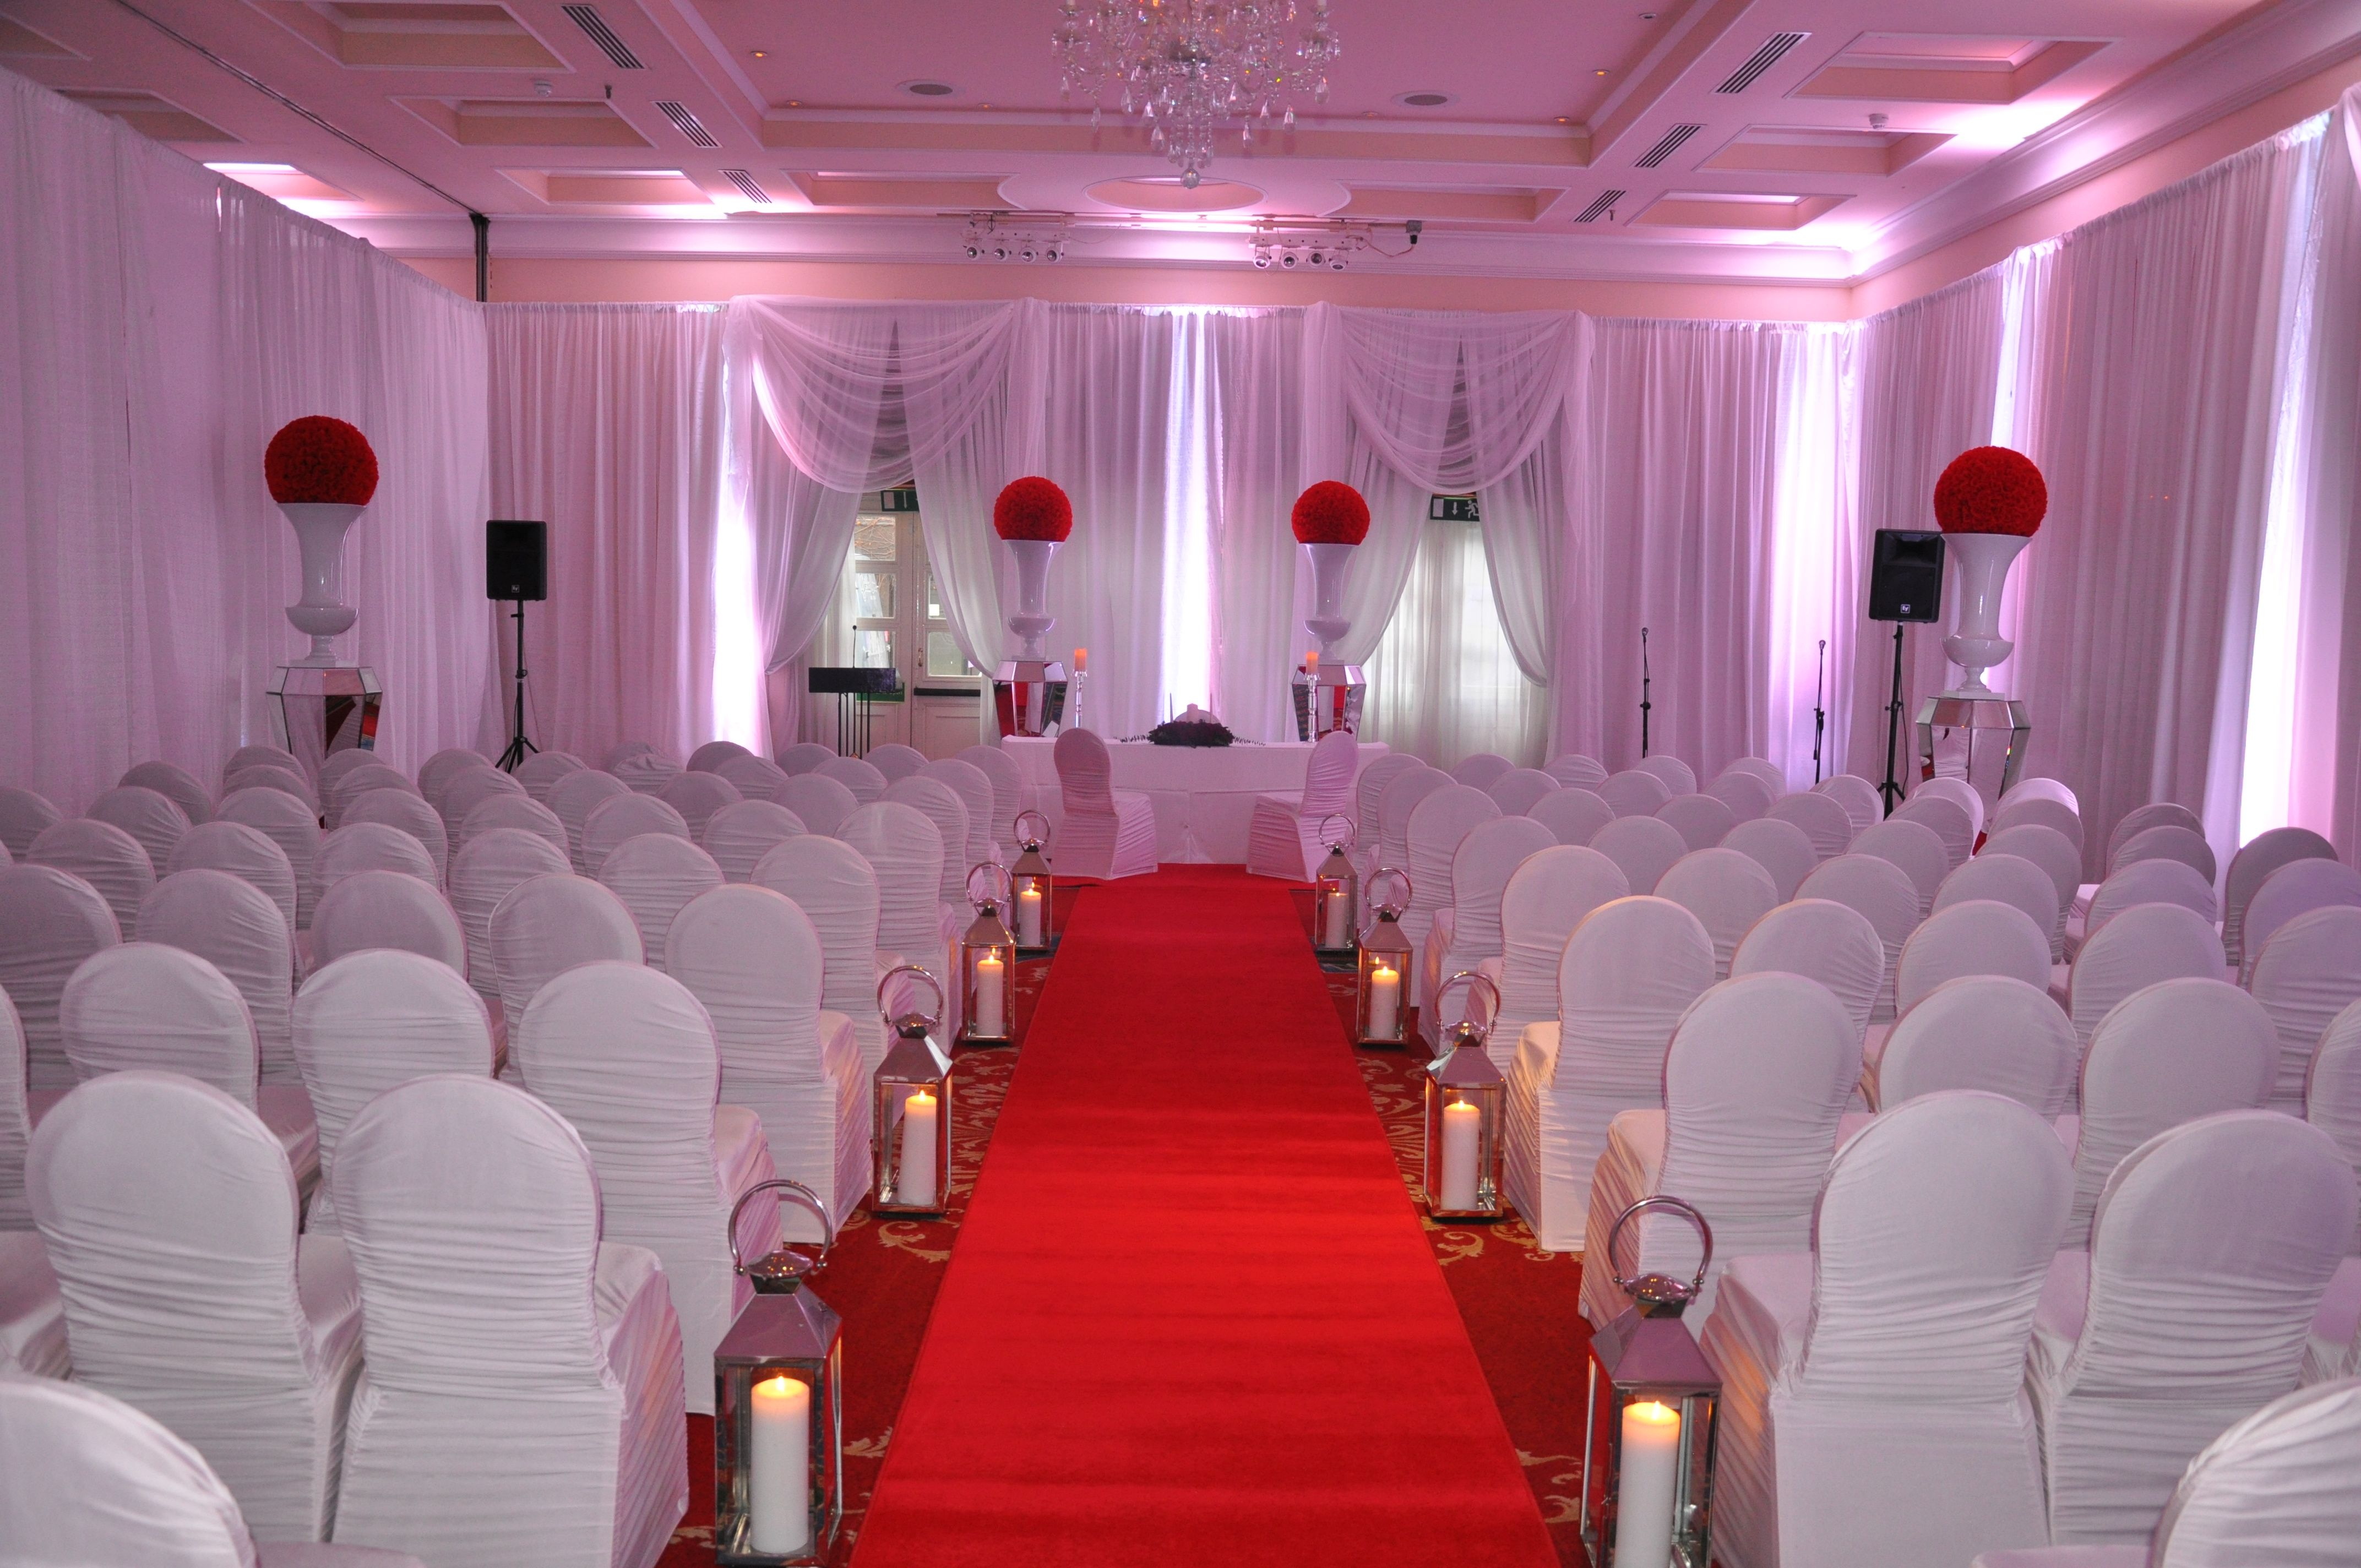 Civil Wedding Decoration Ideas: A Civil Partnership Ceremony In The Clyde Court. For More